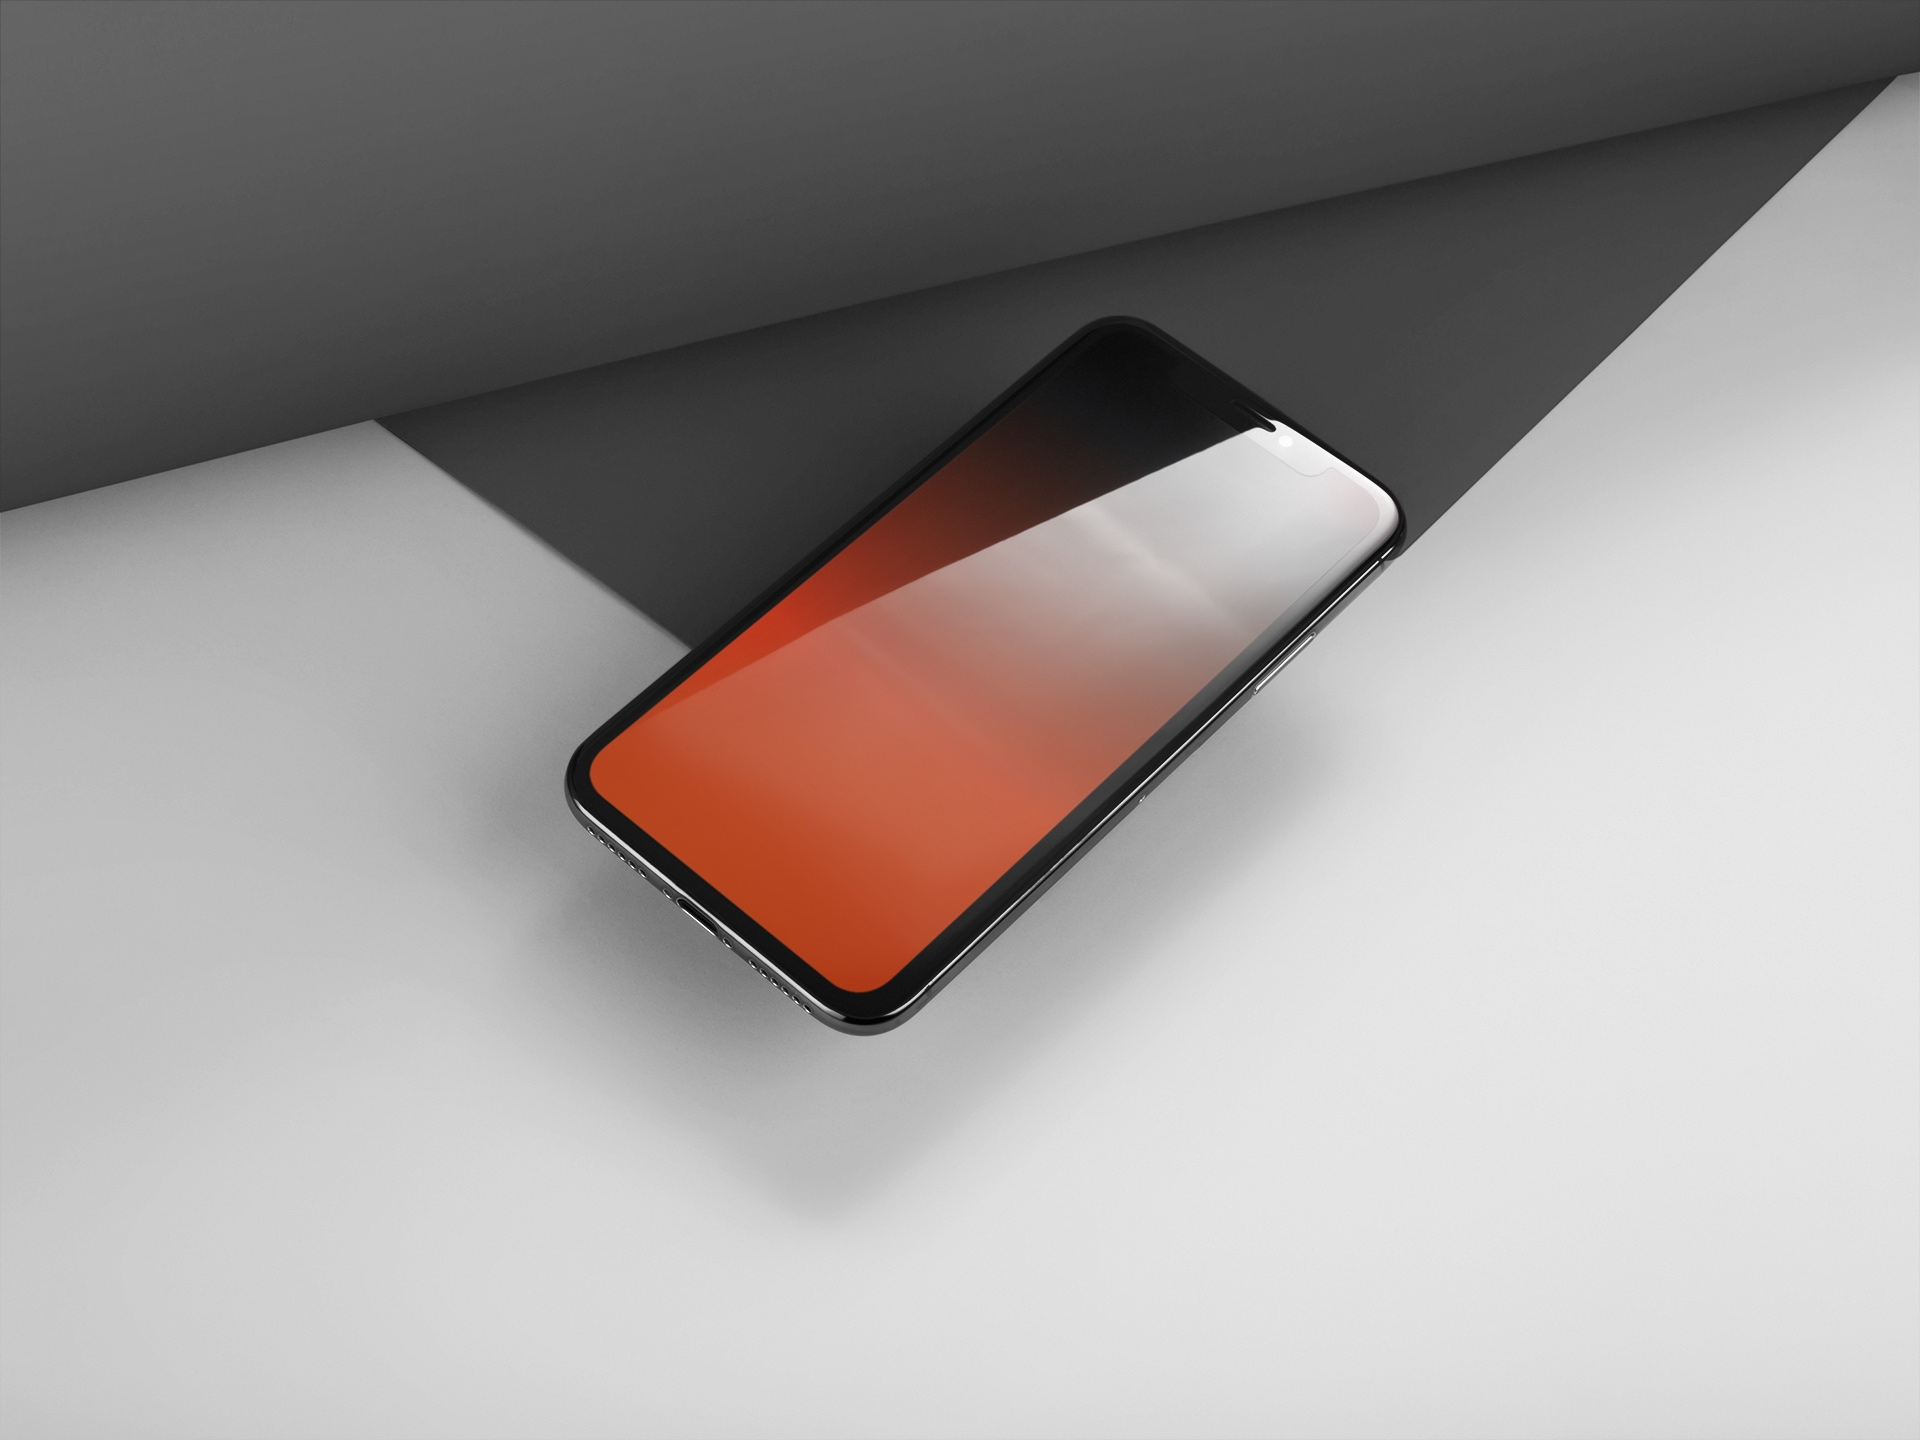 Wallpaper Simple Unik Notchless Gradient Wallpapers For Iphone X